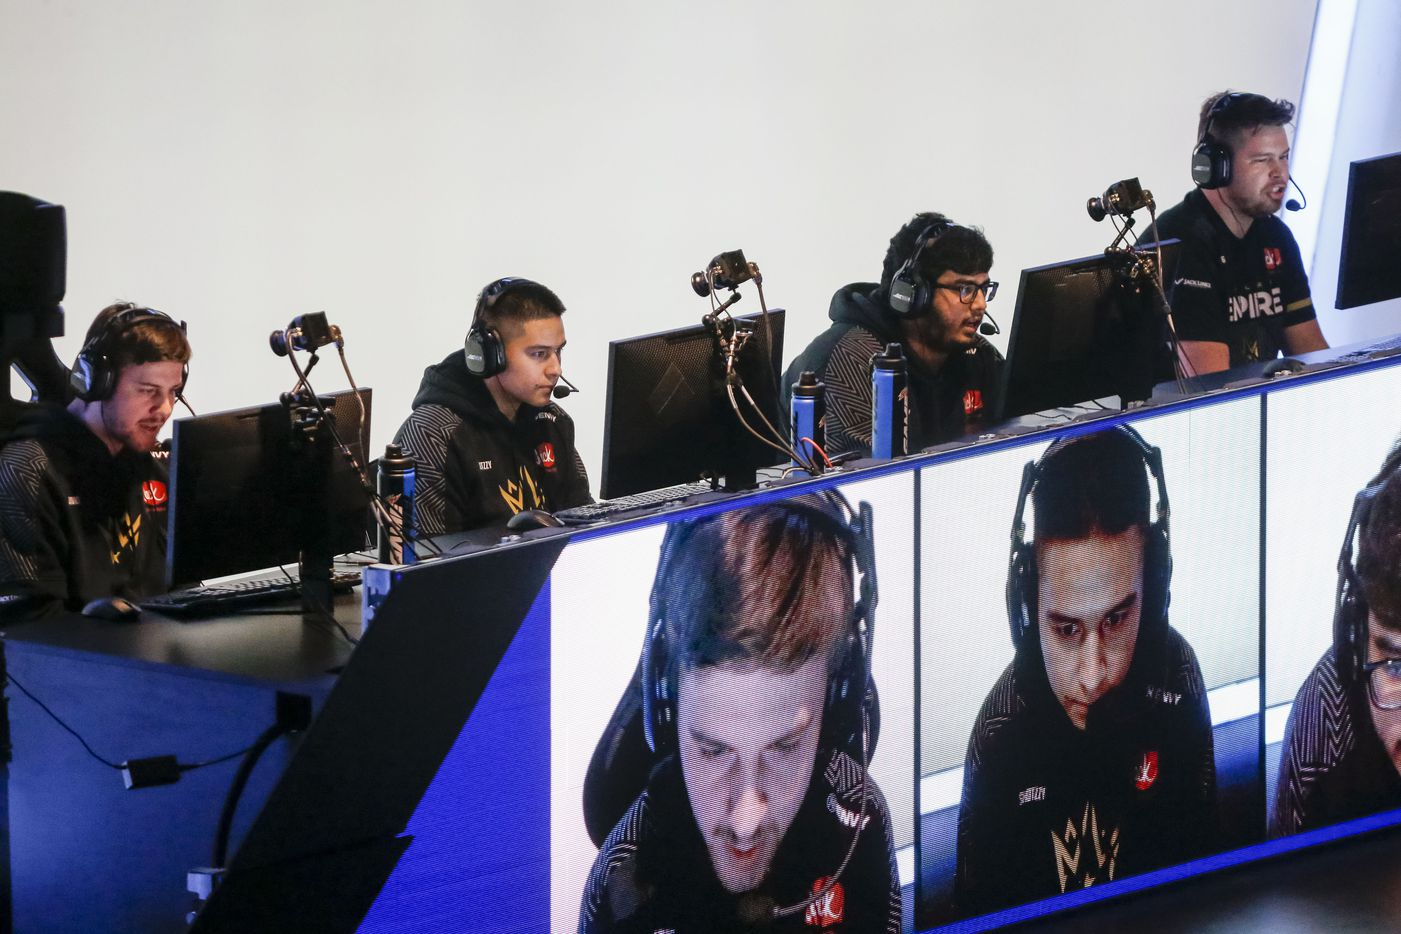 The Dallas Empire compete against the Los Angeles Thieves during the Call of Duty League Major V tournament at Esports Stadium Arlington on Saturday, July 31, 2021, in Arlington. Empire defeated Thieves 3-1 to advance in the tournament. (Elias Valverde II/The Dallas Morning News)